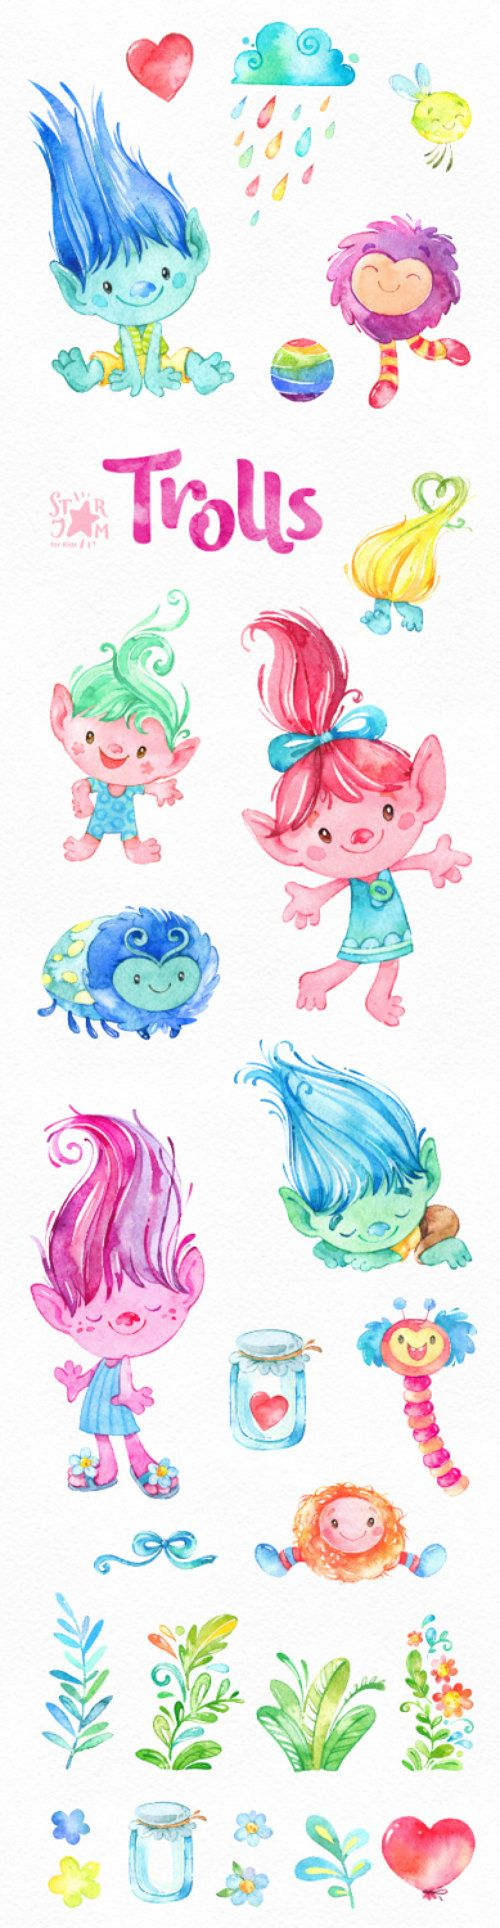 Trolls. Watercolor clip art cute characters от StarJamforKids